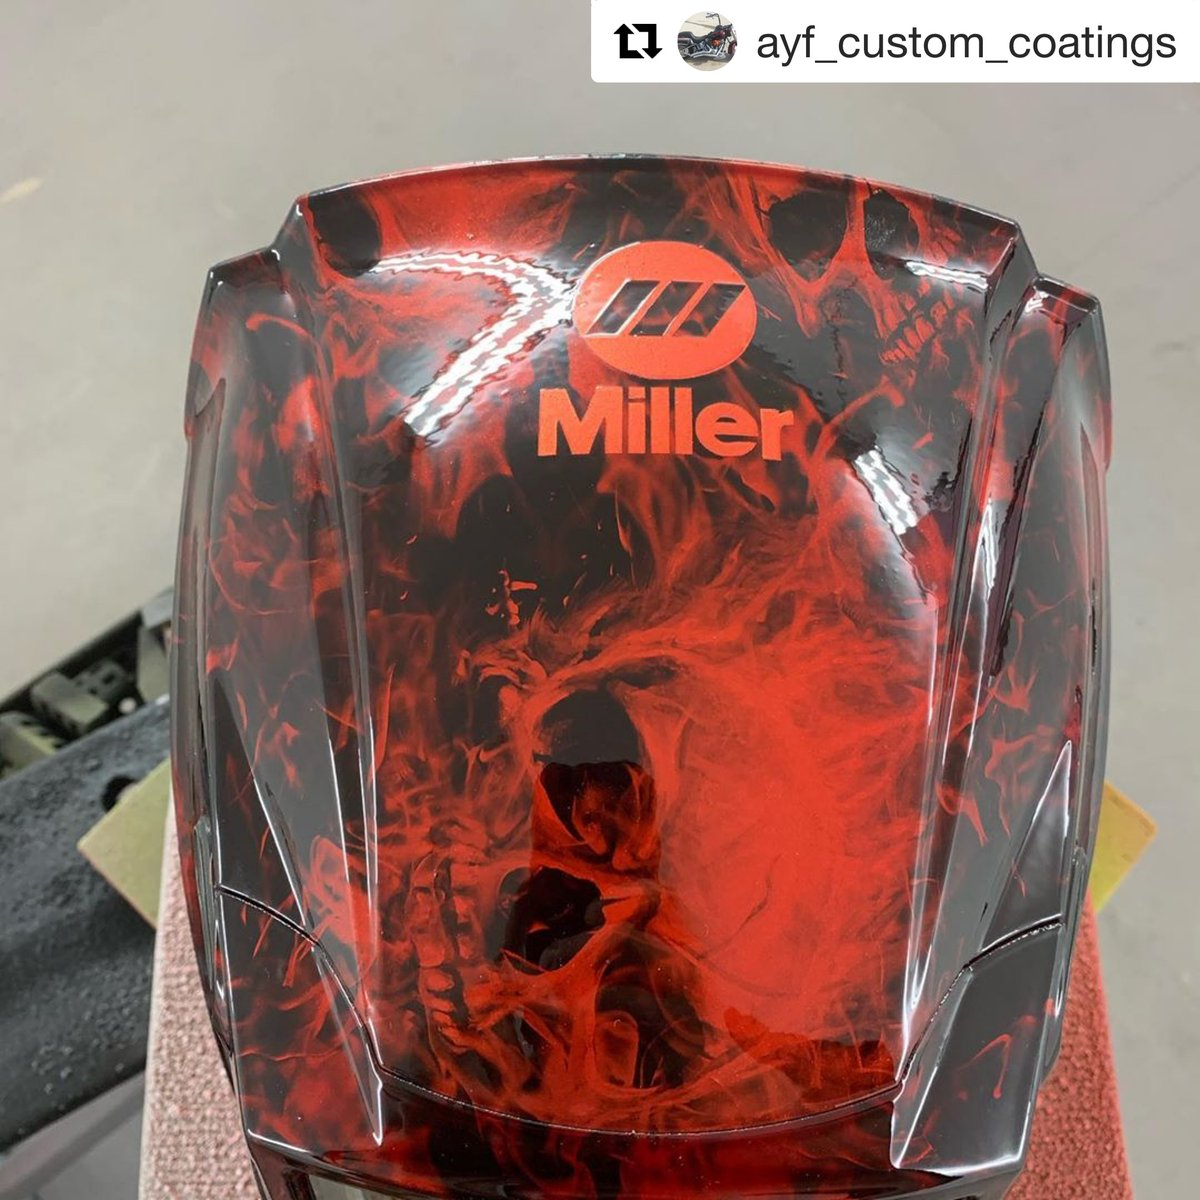 Have you personalized your Miller® welding helmet? Show us how you make it your own. Thanks for sharing your before and after pictures Instagram user @ayf_custom_coatings – such an awesome transformation! #MillerWelders #weldblue https://t.co/HAk7WNwbrQ